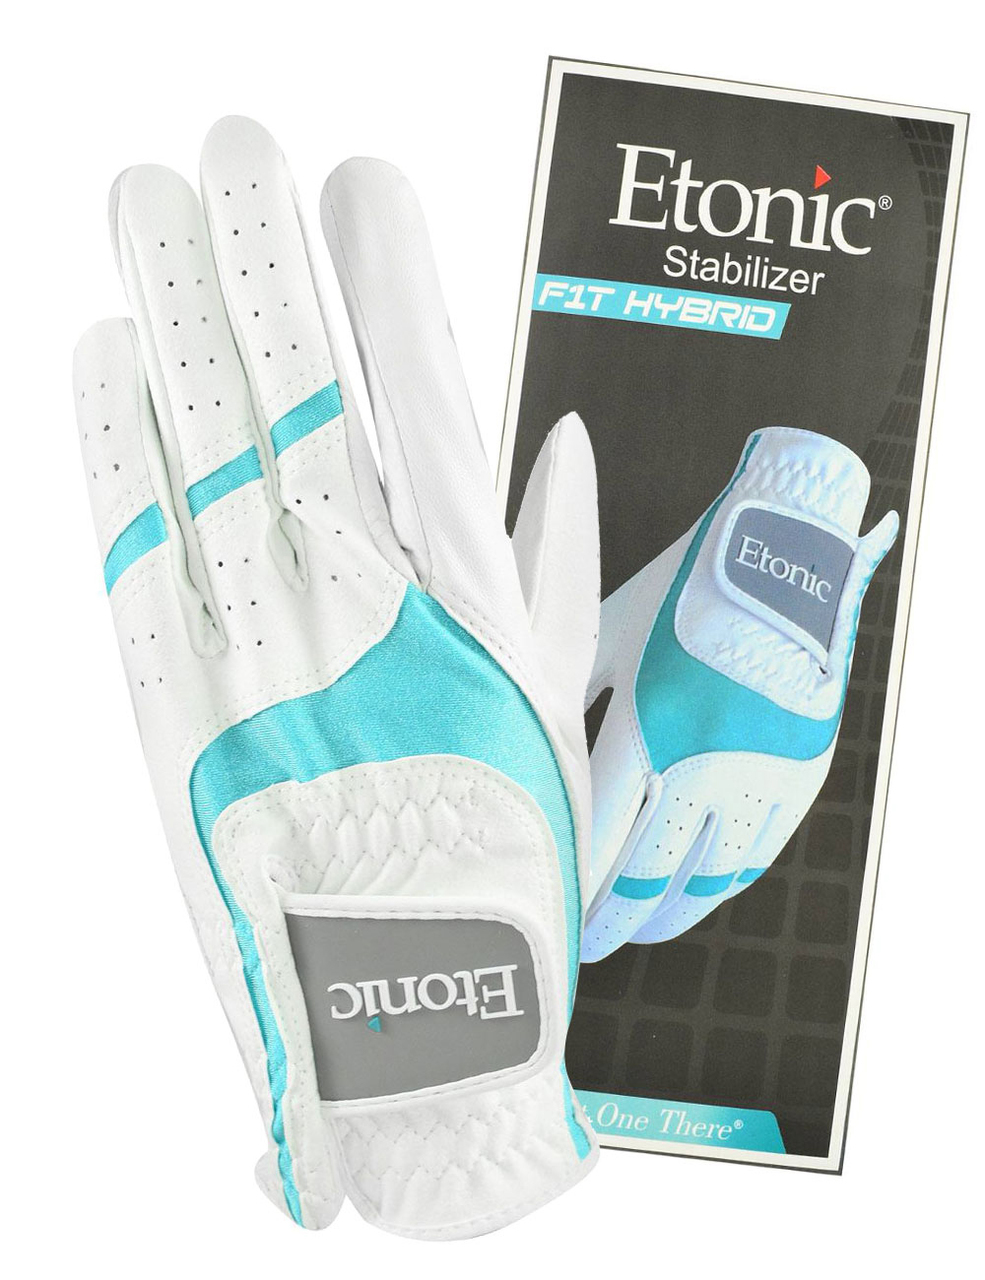 Etonic Golf- Ladies LLH Stabilizer F1T Hybrid Glove